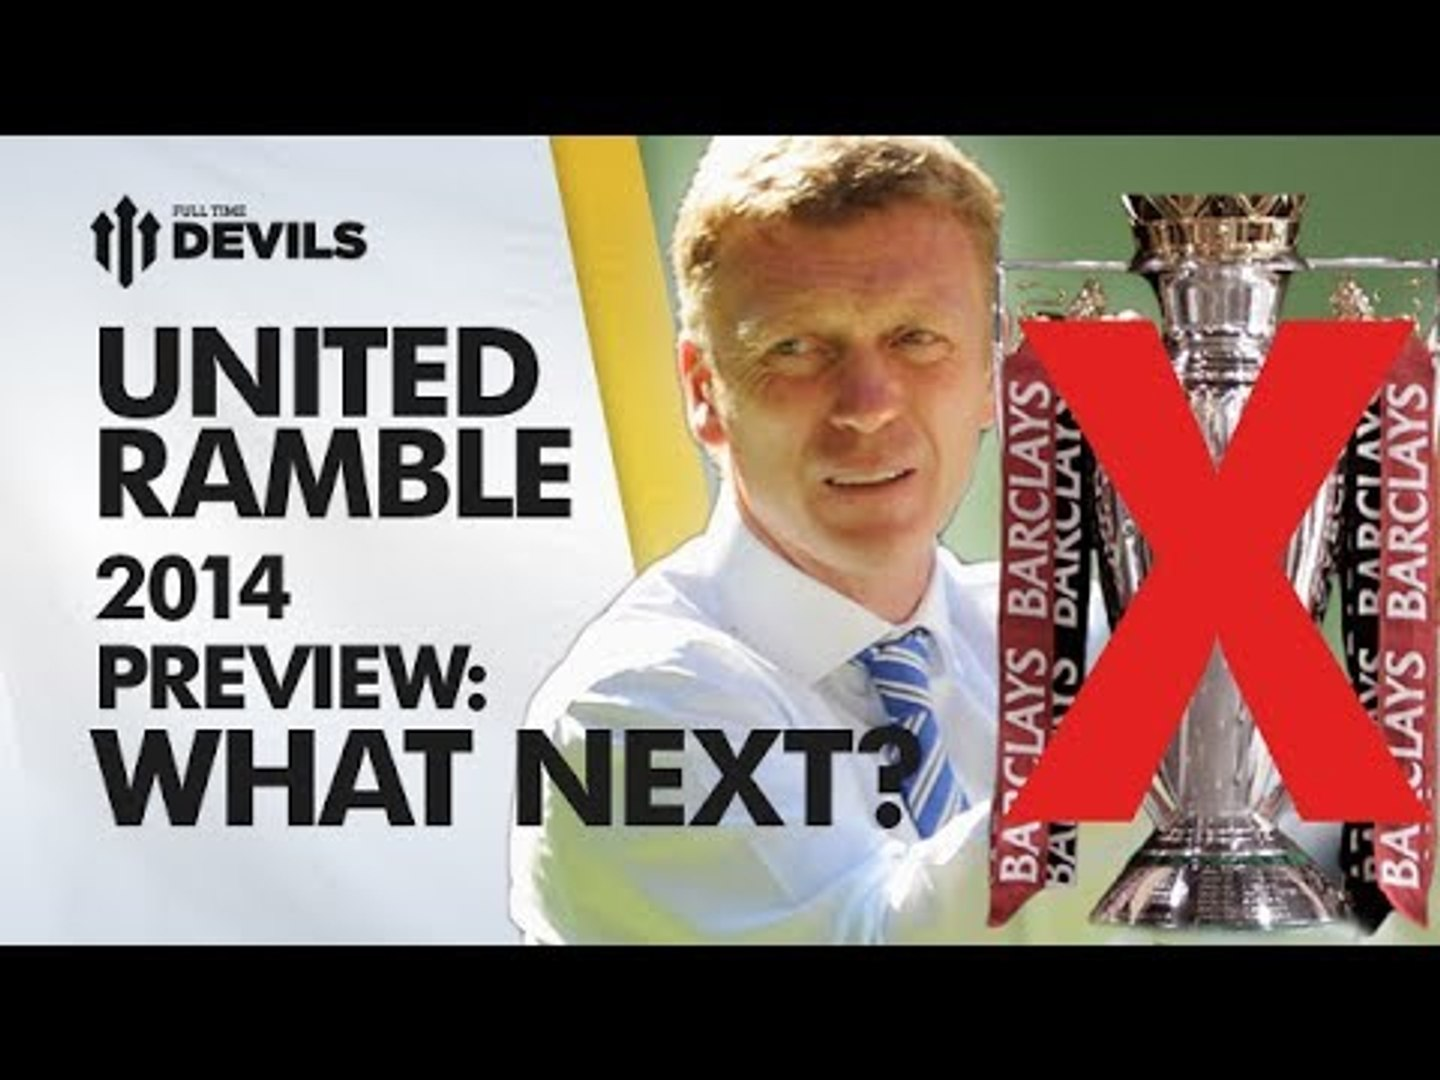 Manchester United 2014 Preview   UNITED RAMBLE   Ep 3 - 2 of 2